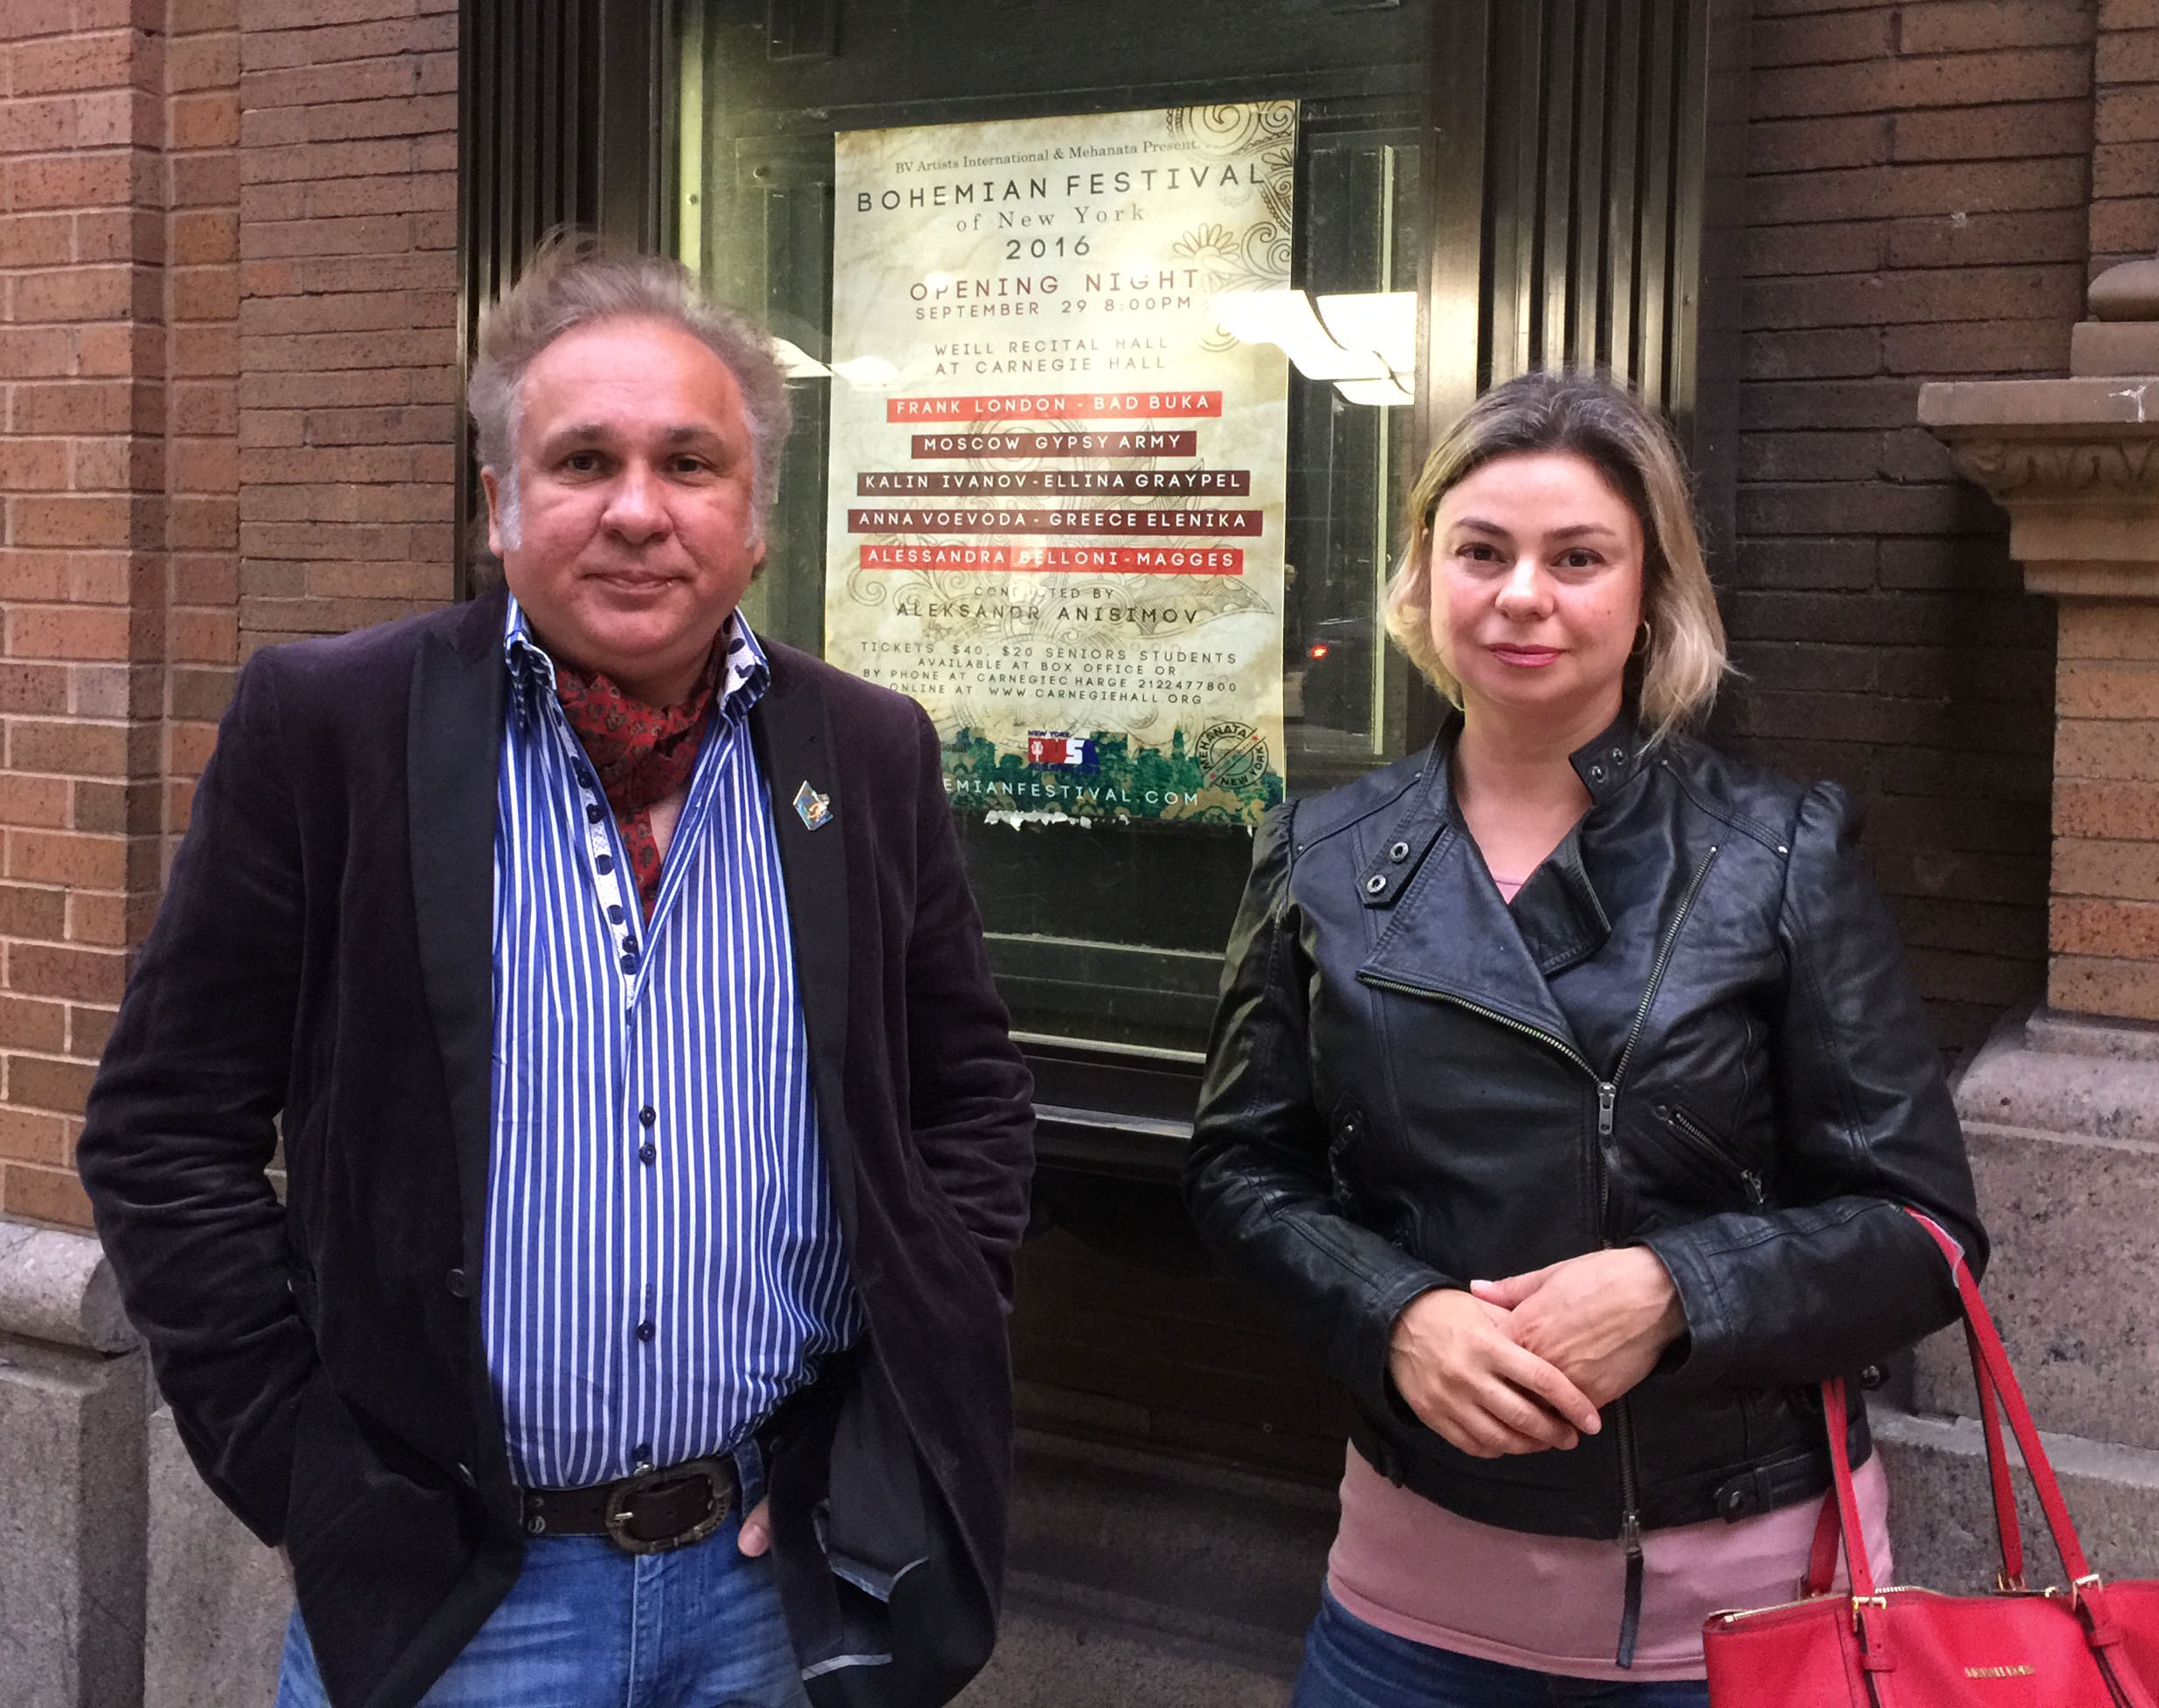 Vasily Yankovich-Romani and Elina Karokhina before the concert at the Carnegie Hall in New York City